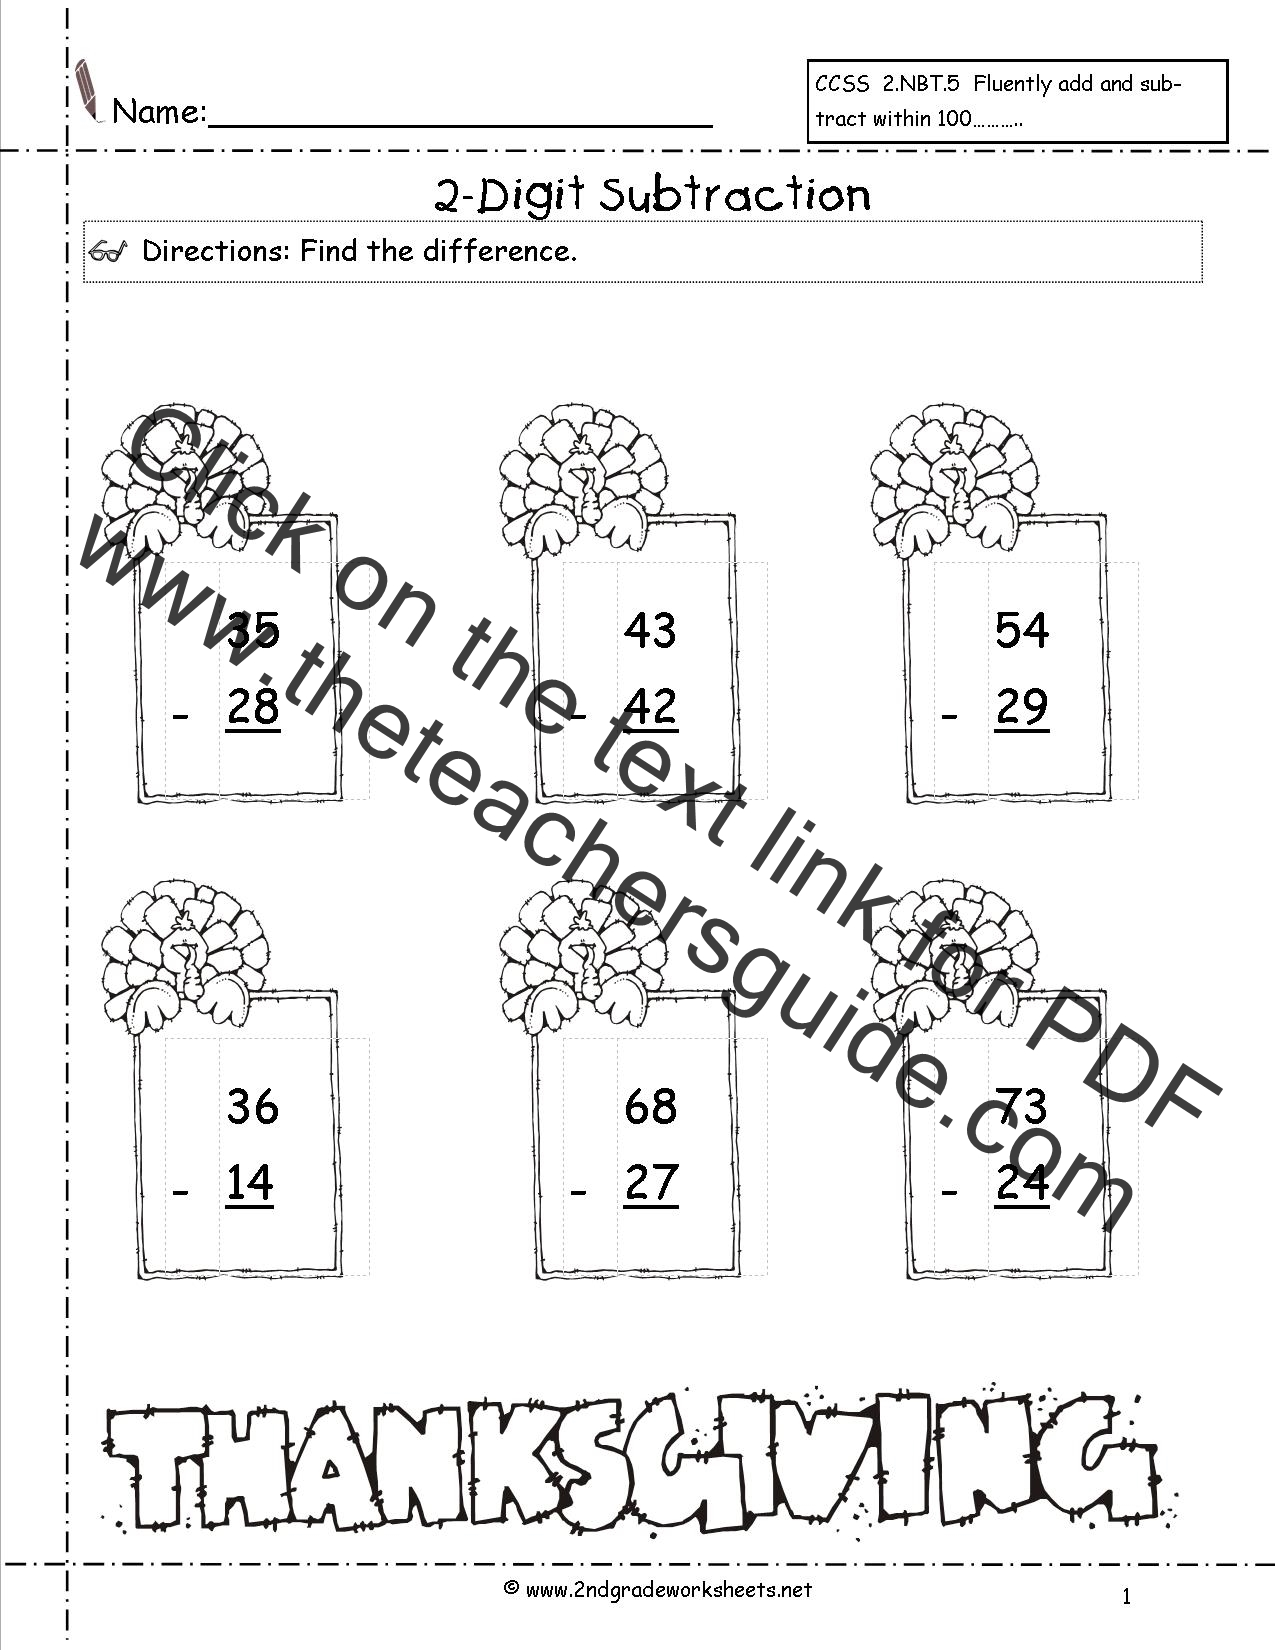 worksheet Thanksgiving Math Worksheet thanksgiving printouts and worksheets two digit subtraction worksheet